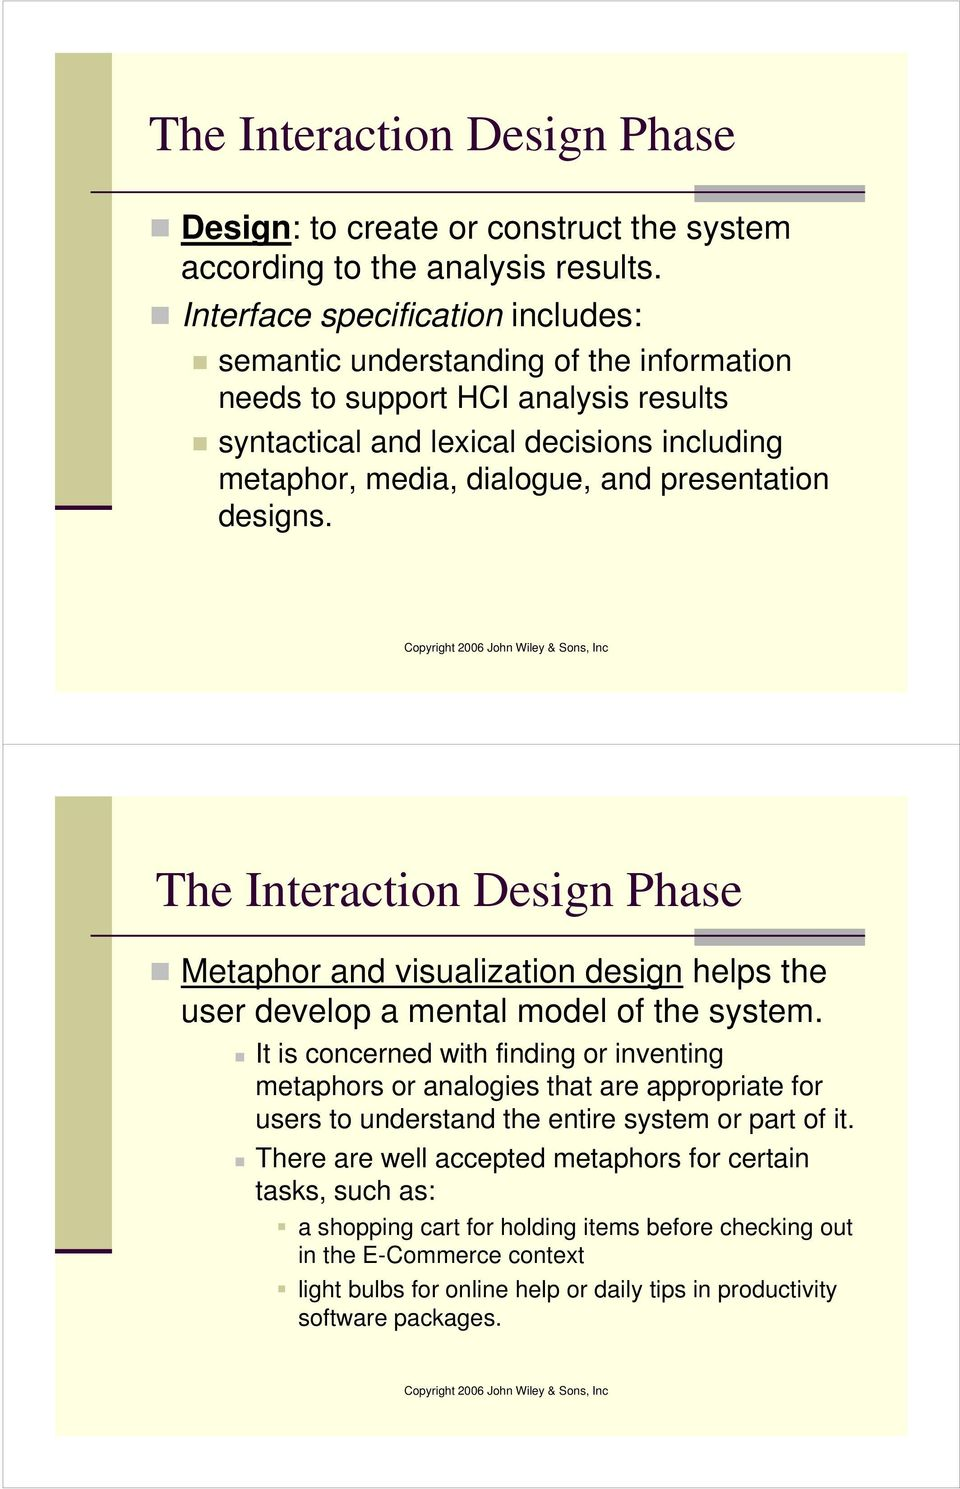 presentation designs. The Interaction Design Phase Metaphor and visualization design helps the user develop a mental model of the system.